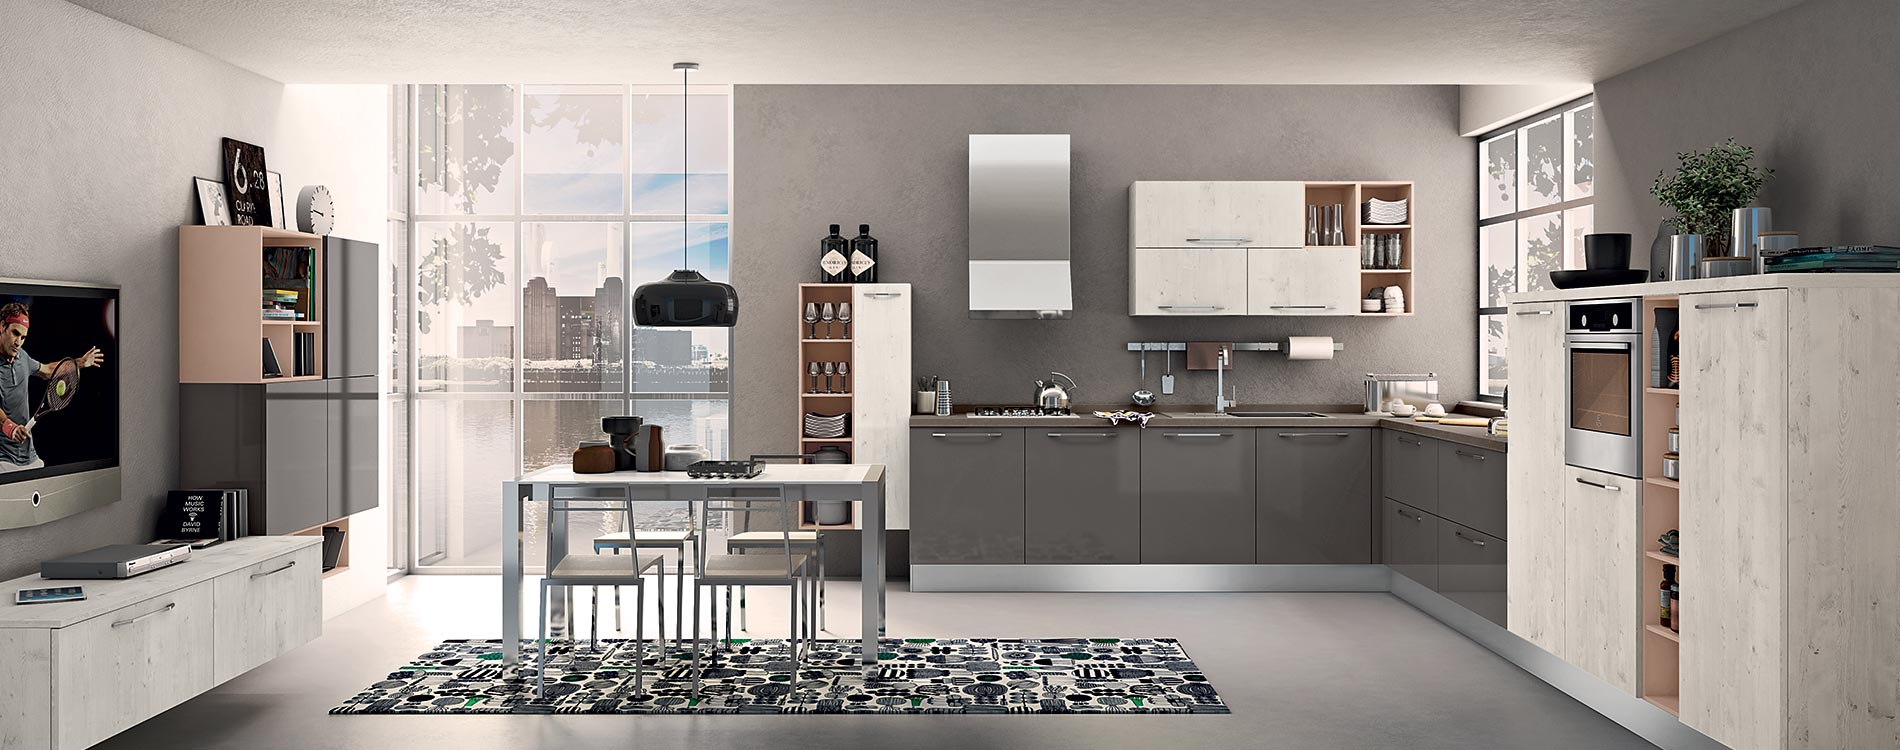 Mobilificio europa cucine lube stosa for Mobili design